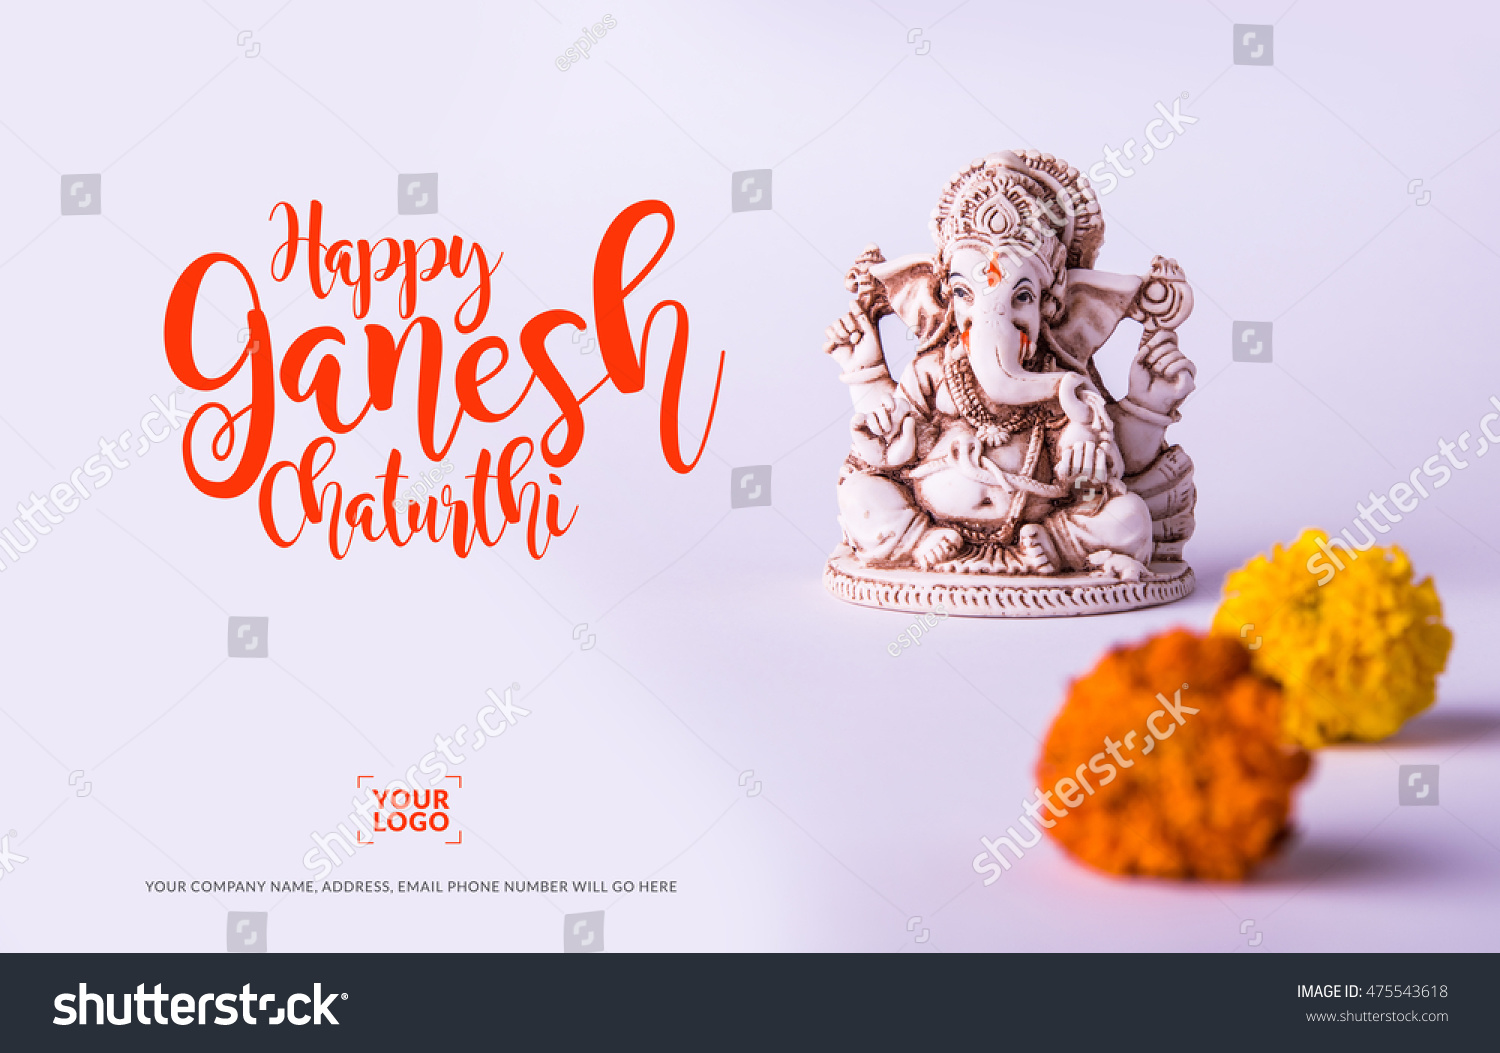 Happy ganesh chaturthi greeting card showing stock photo edit now happy ganesh chaturthi greeting card showing photograph of lord ganesha idol m4hsunfo